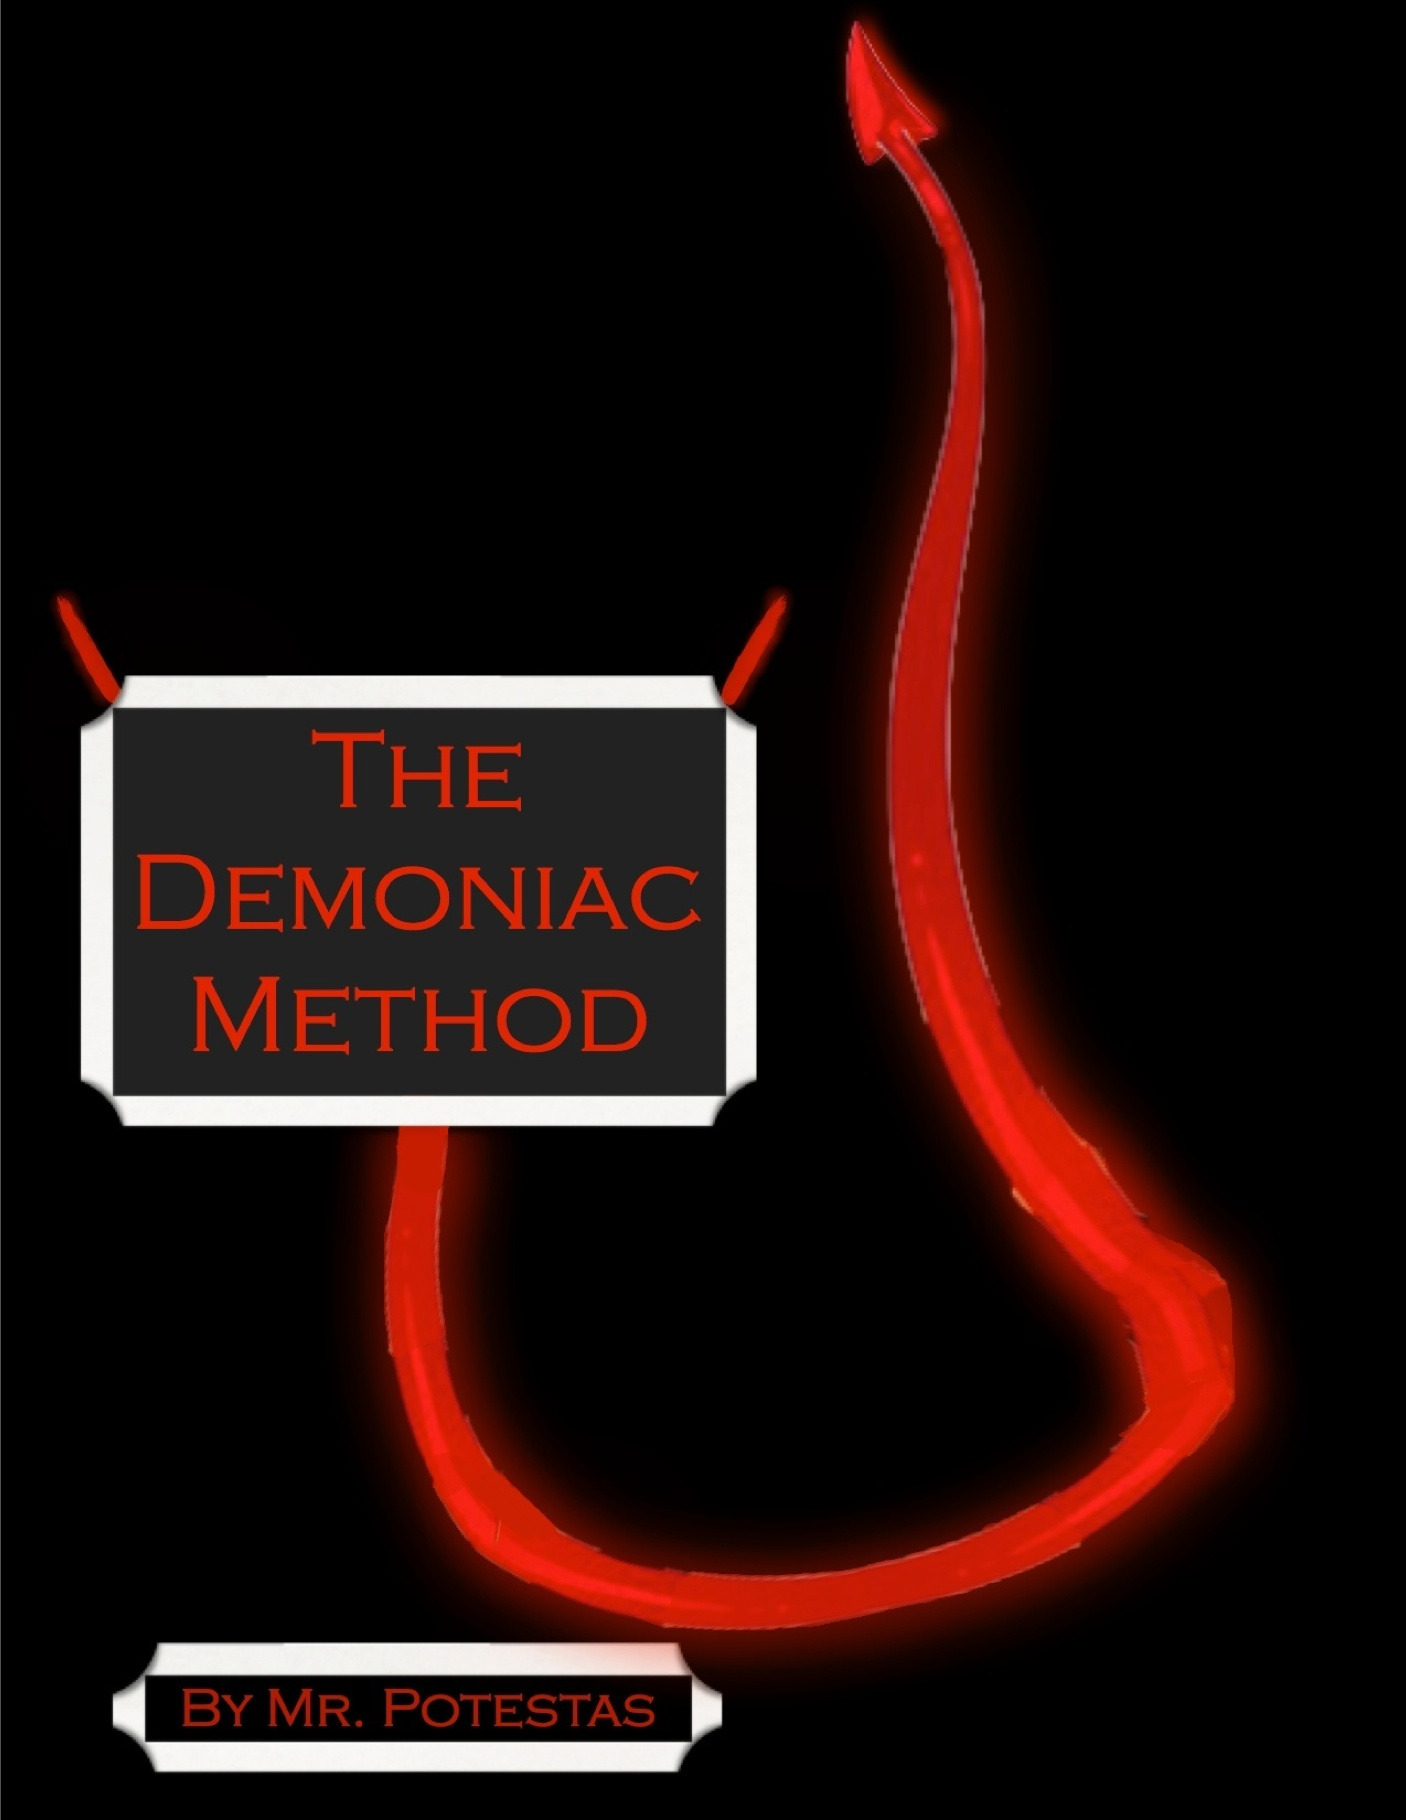 The Demoniac Method